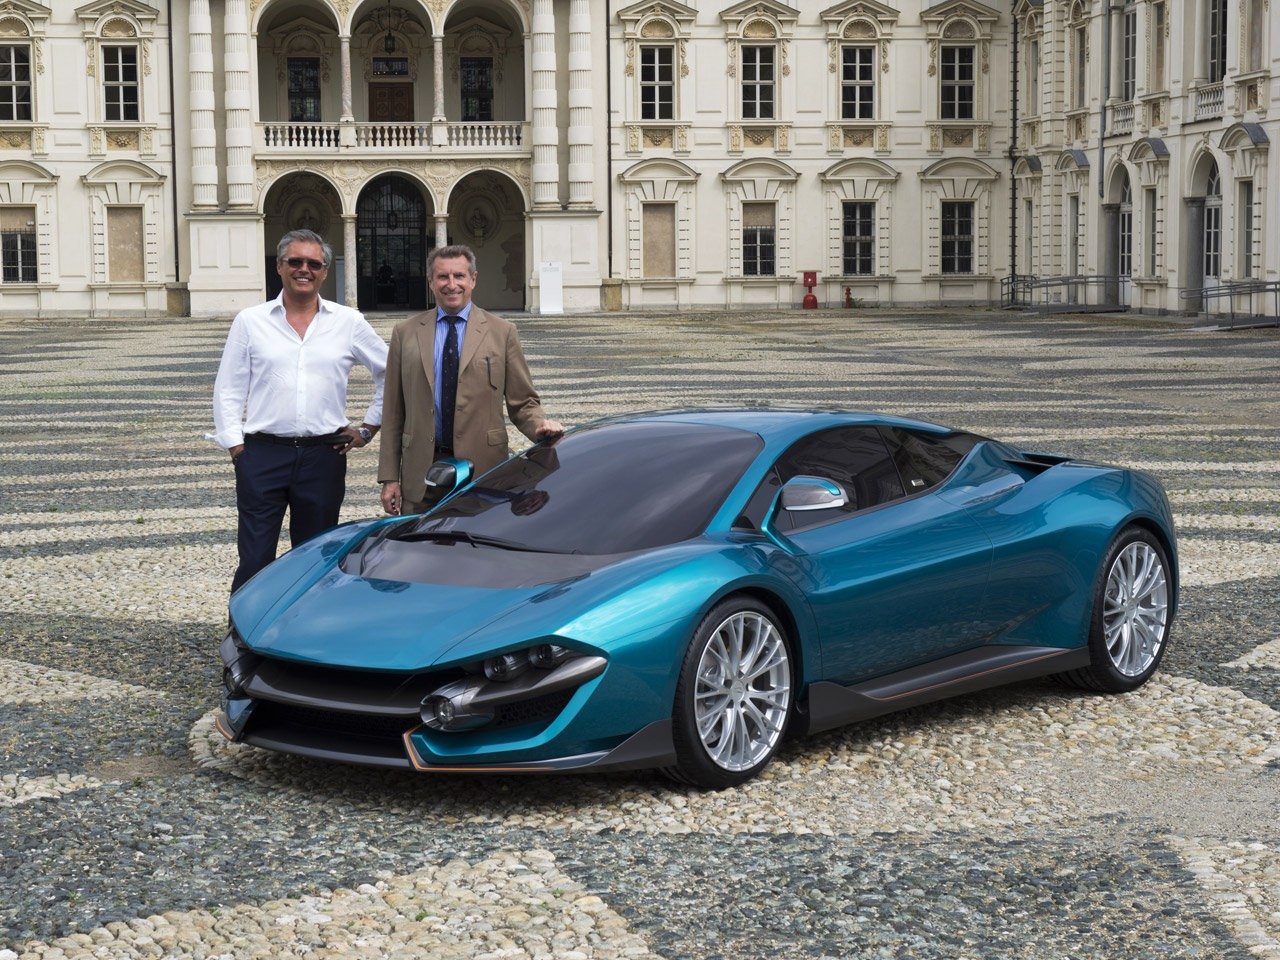 Torino Design Ats Wildtwelve Is A Hybrid Hypercar That Can Do